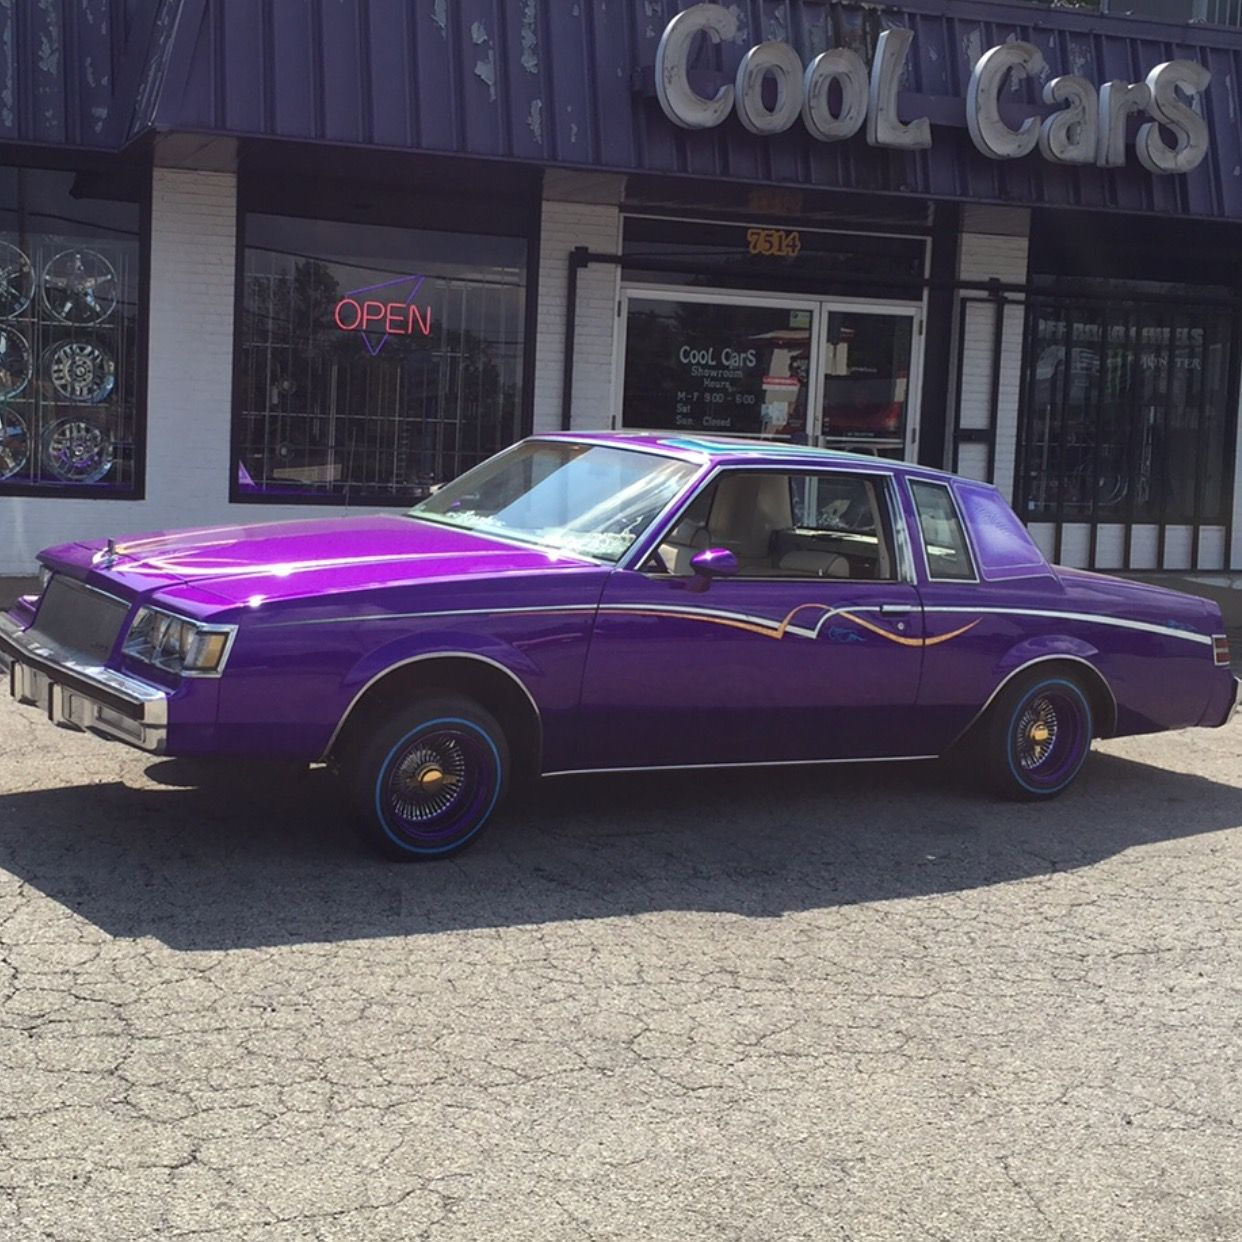 Pin By Cool Cars CCE Hydraulics On CCE Hydraulics Customer - Cool cars hydraulic